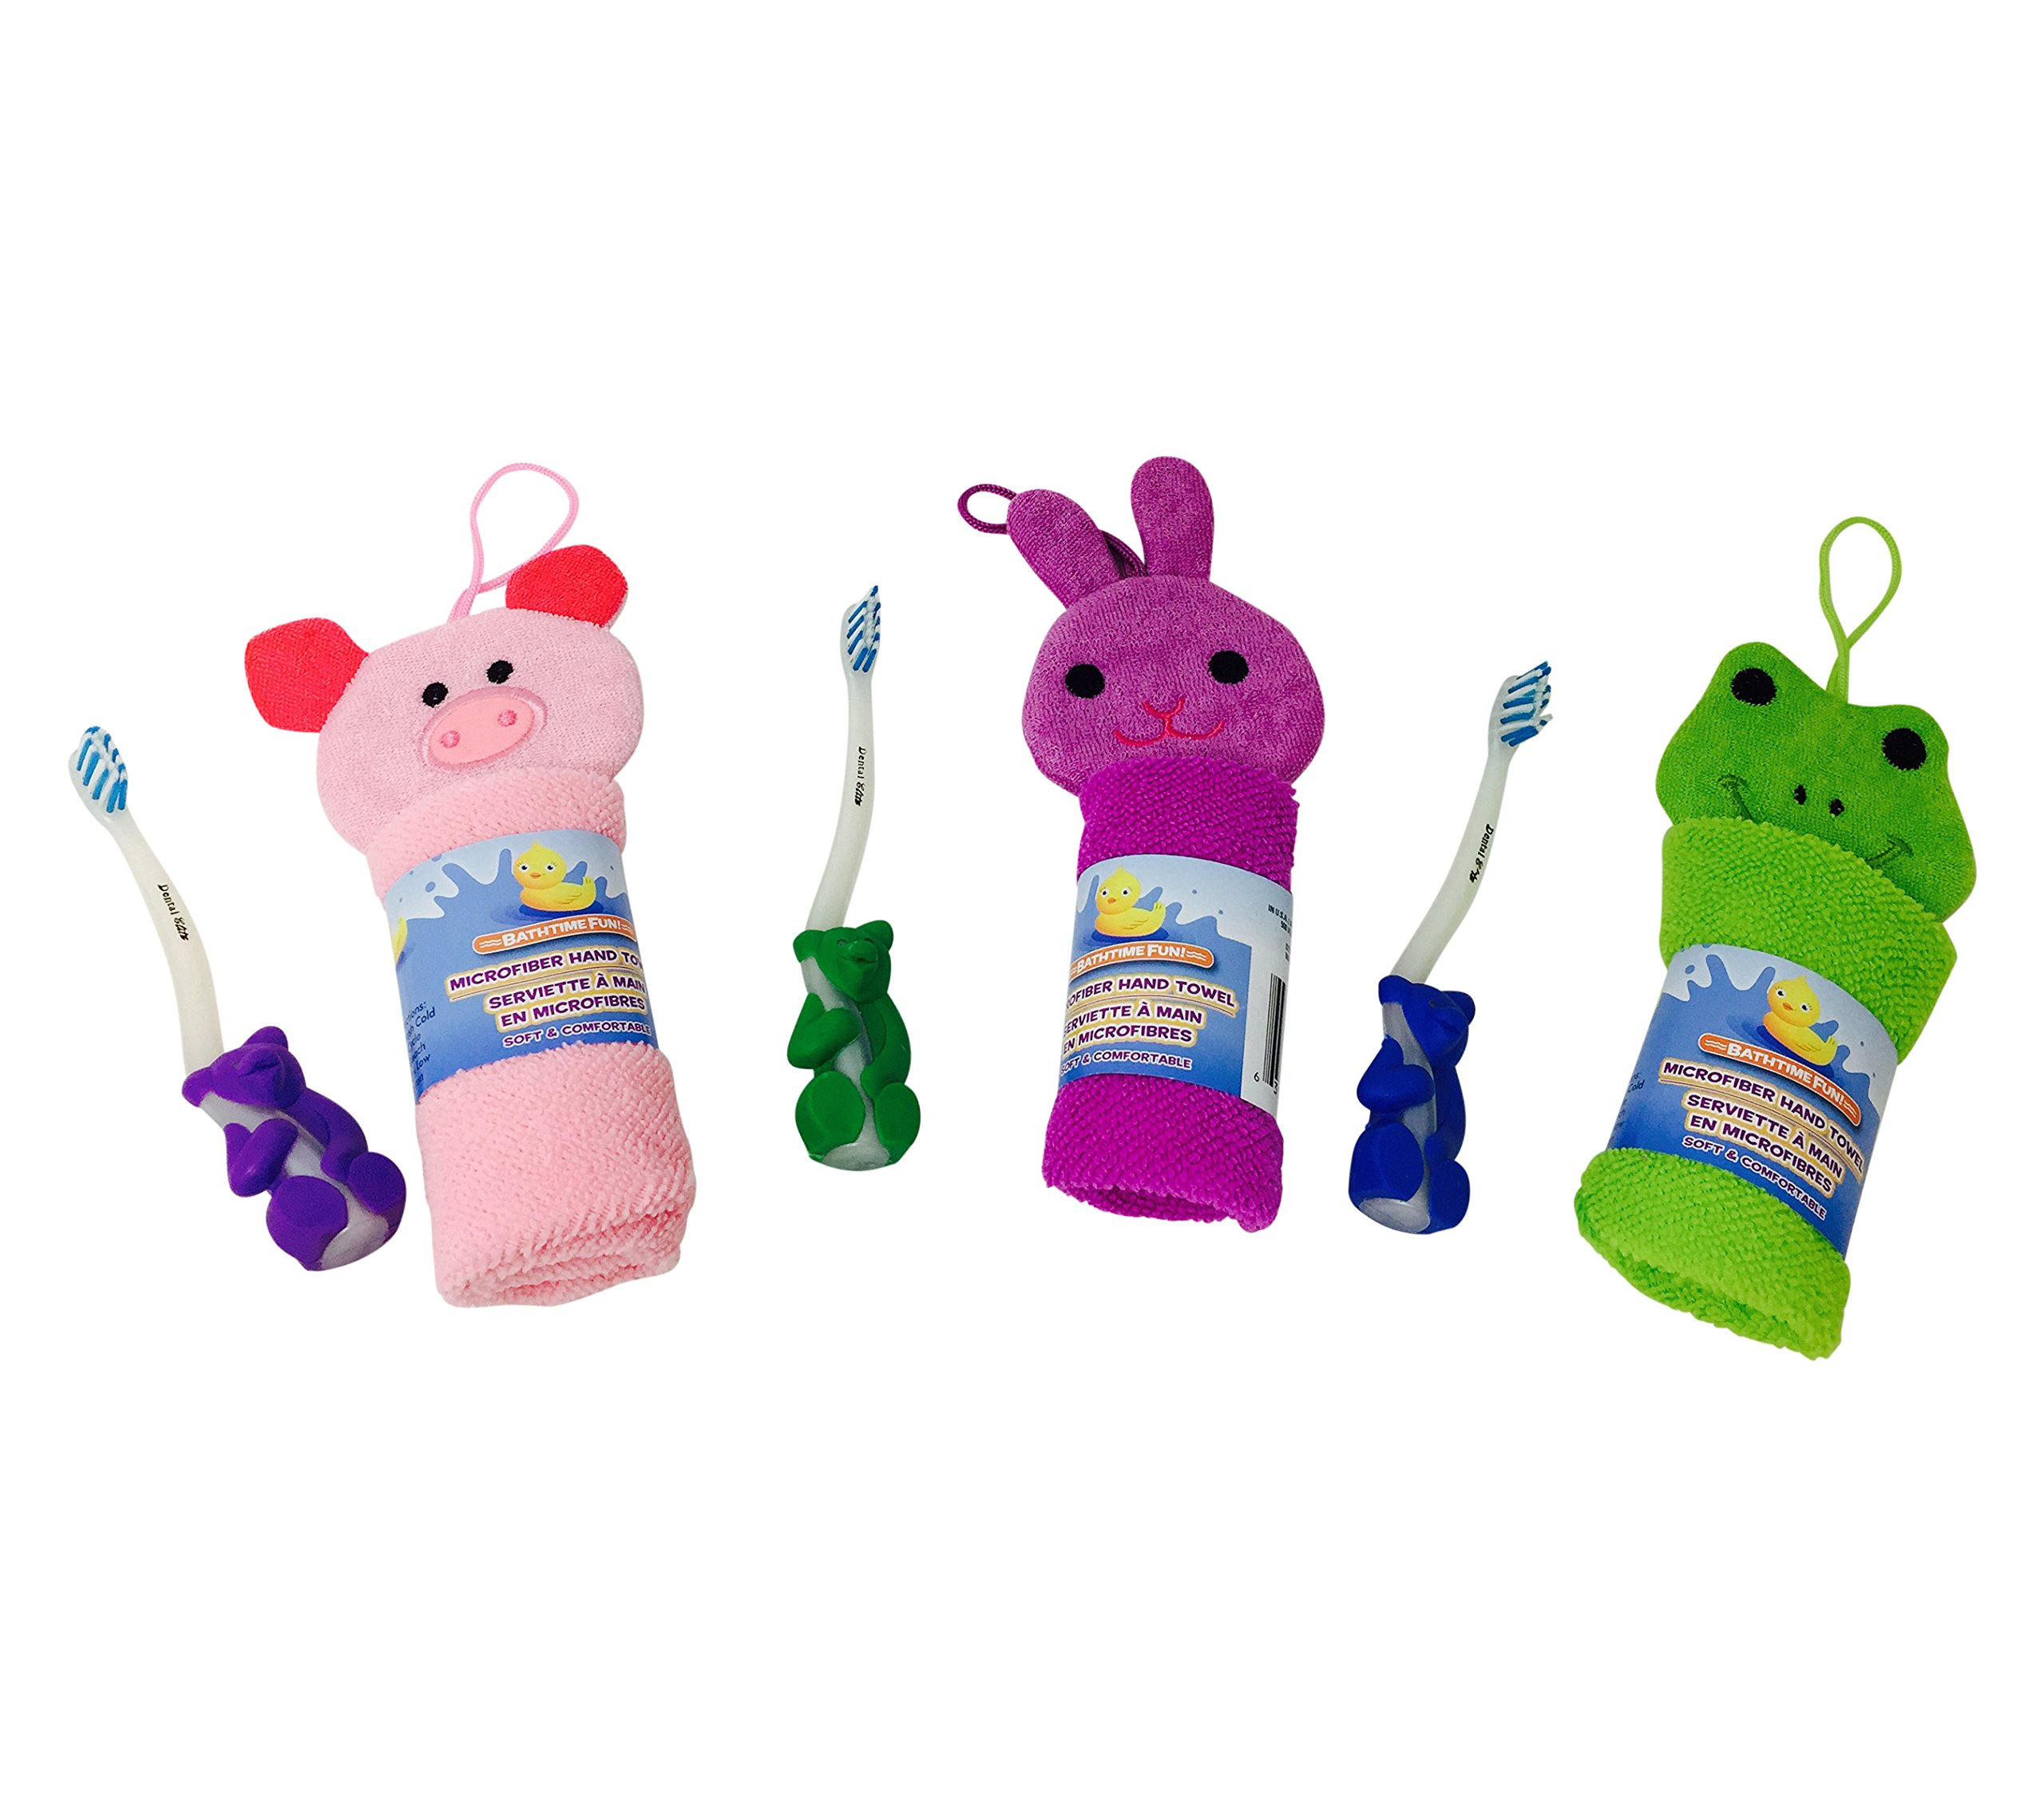 Hobbeez Adorable Microfiber Hand Towel and Toothbrush Set (Set of 3) with Pig, Bunny and Frog Designs